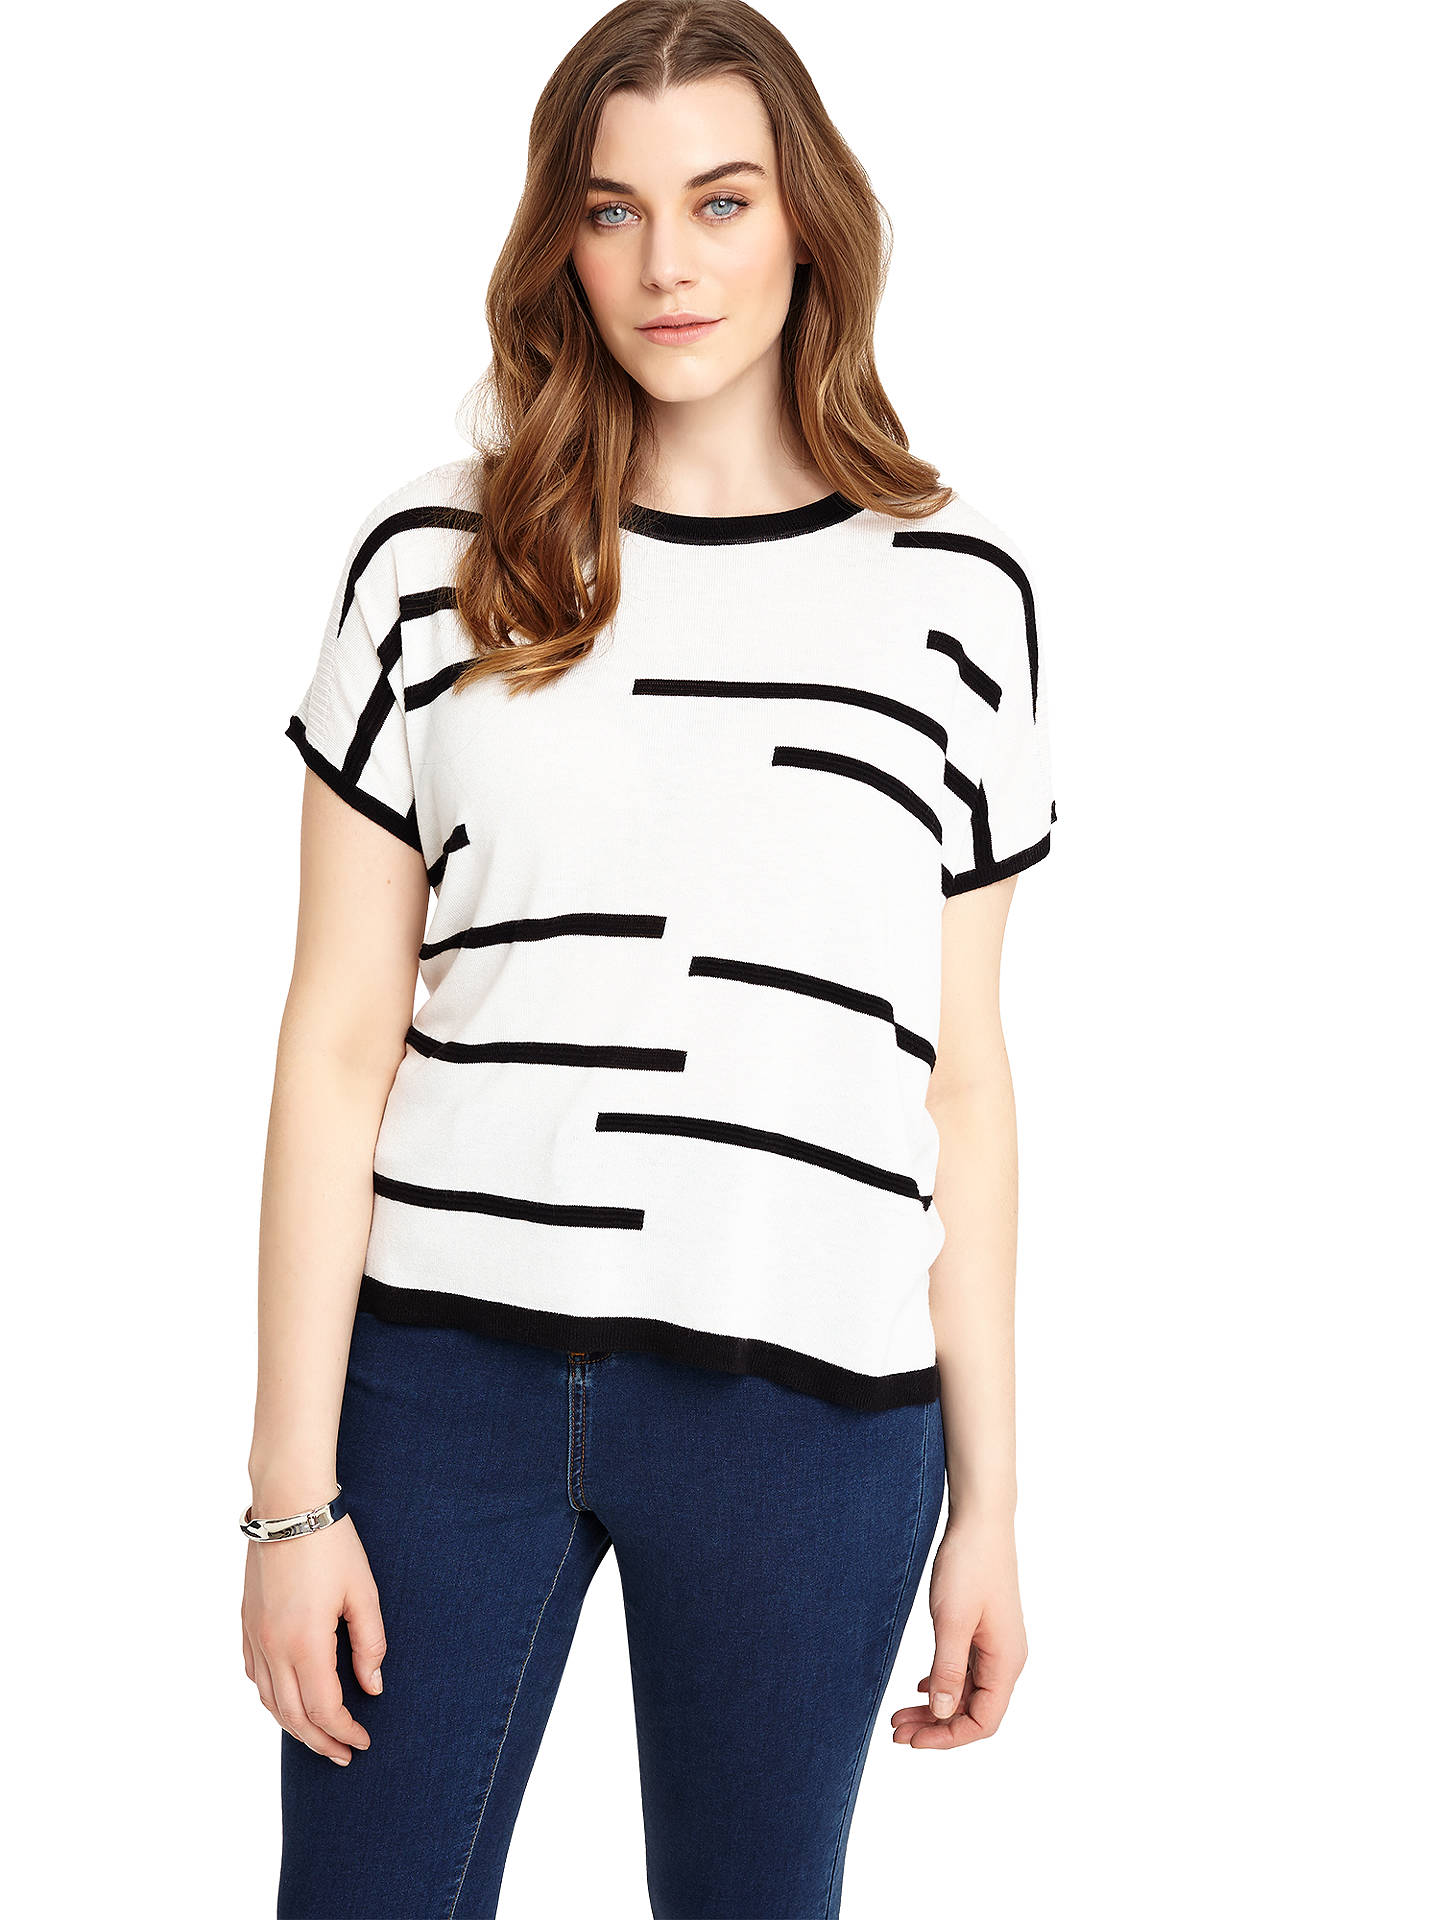 Buy Studio 8 Kelly Knit Top, Black/Ivory, 12 Online at johnlewis.com